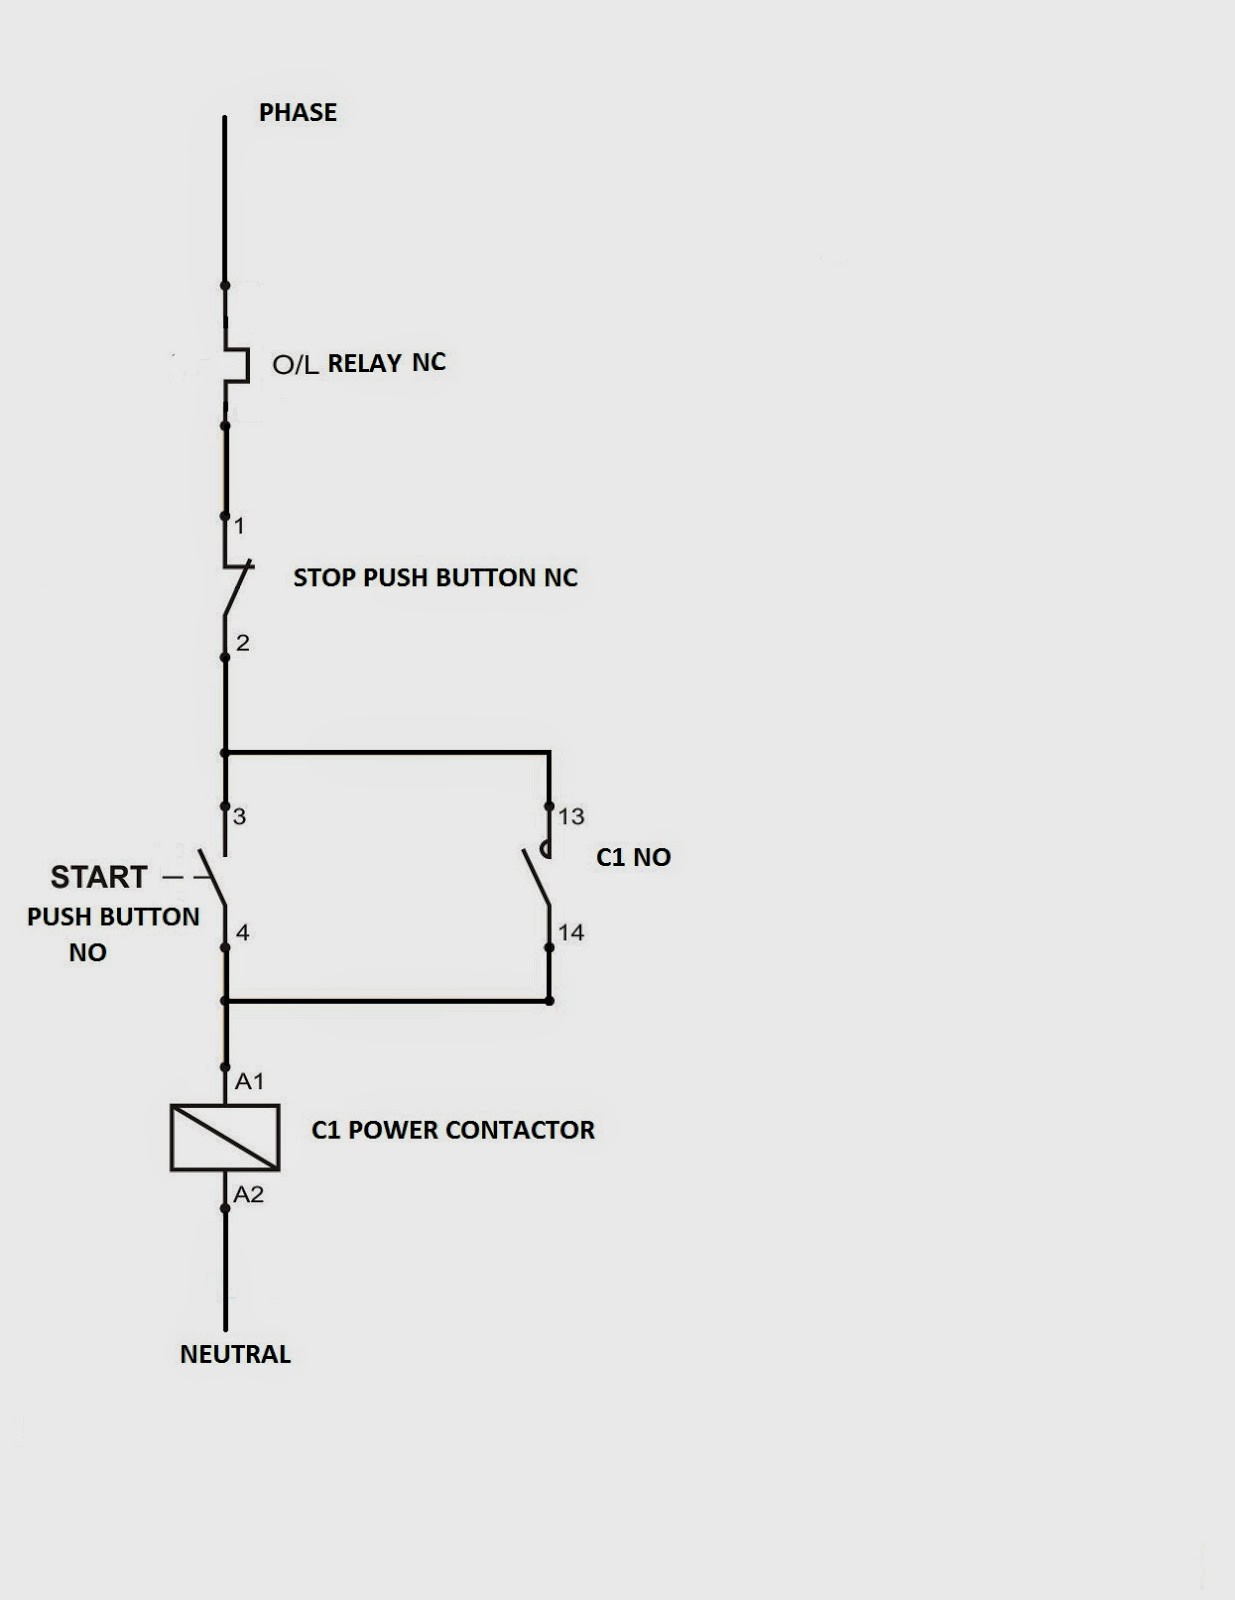 Contactor And Thermal Overload Relay Wiring Diagram Vav Controller Electrical Standards Working Principle